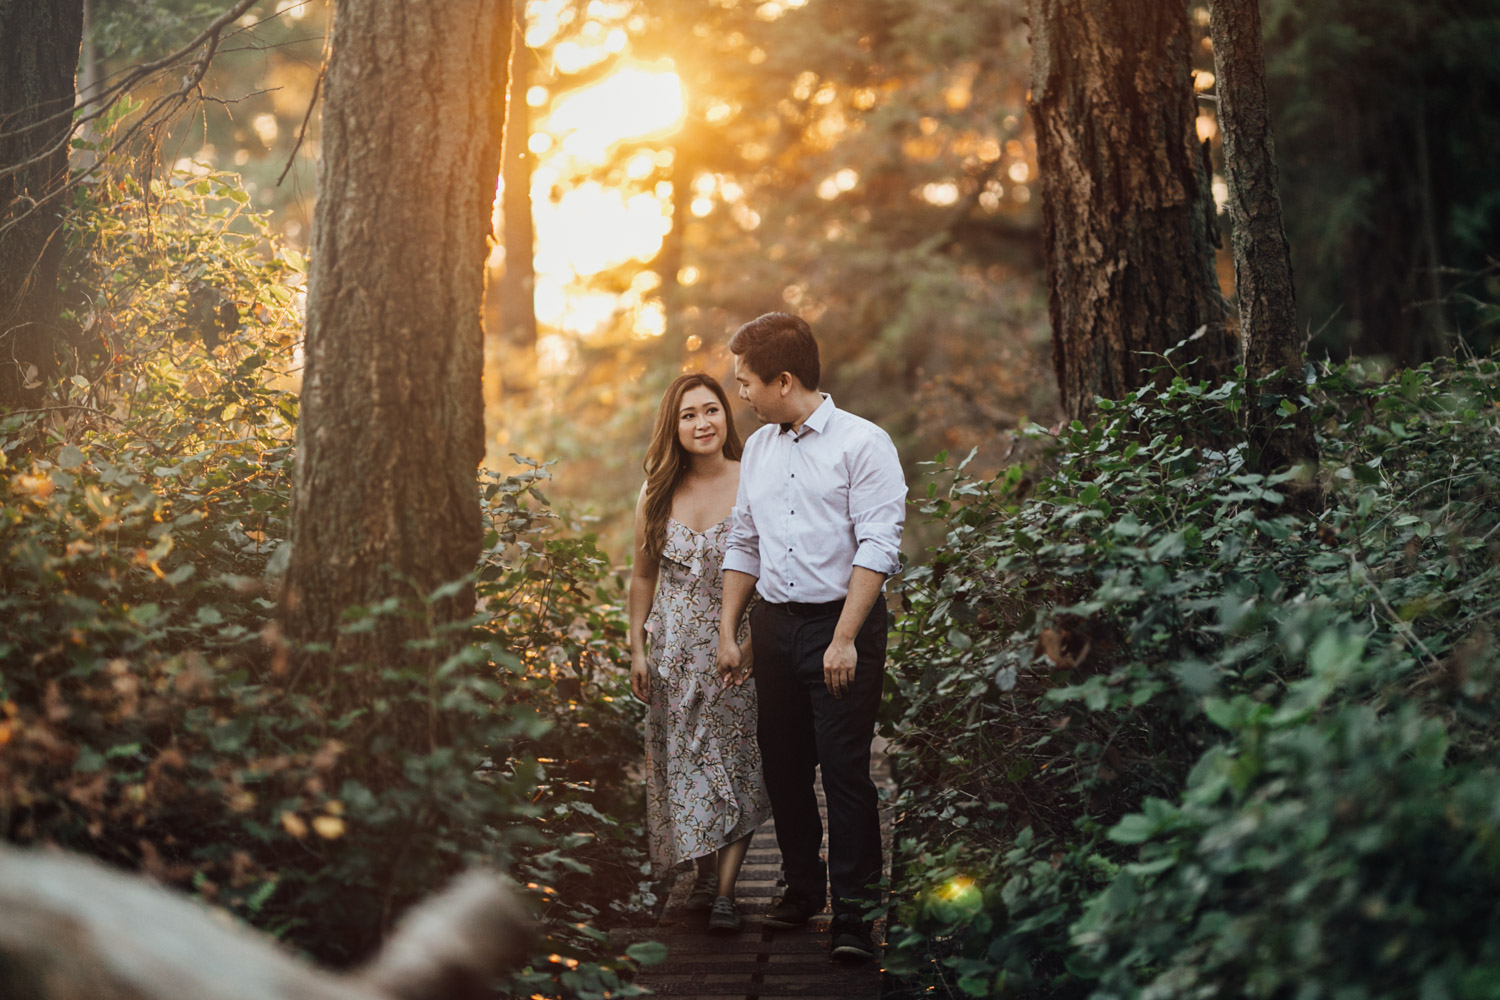 west vancouver engagement photography at lighthouse park during a summer sunset film